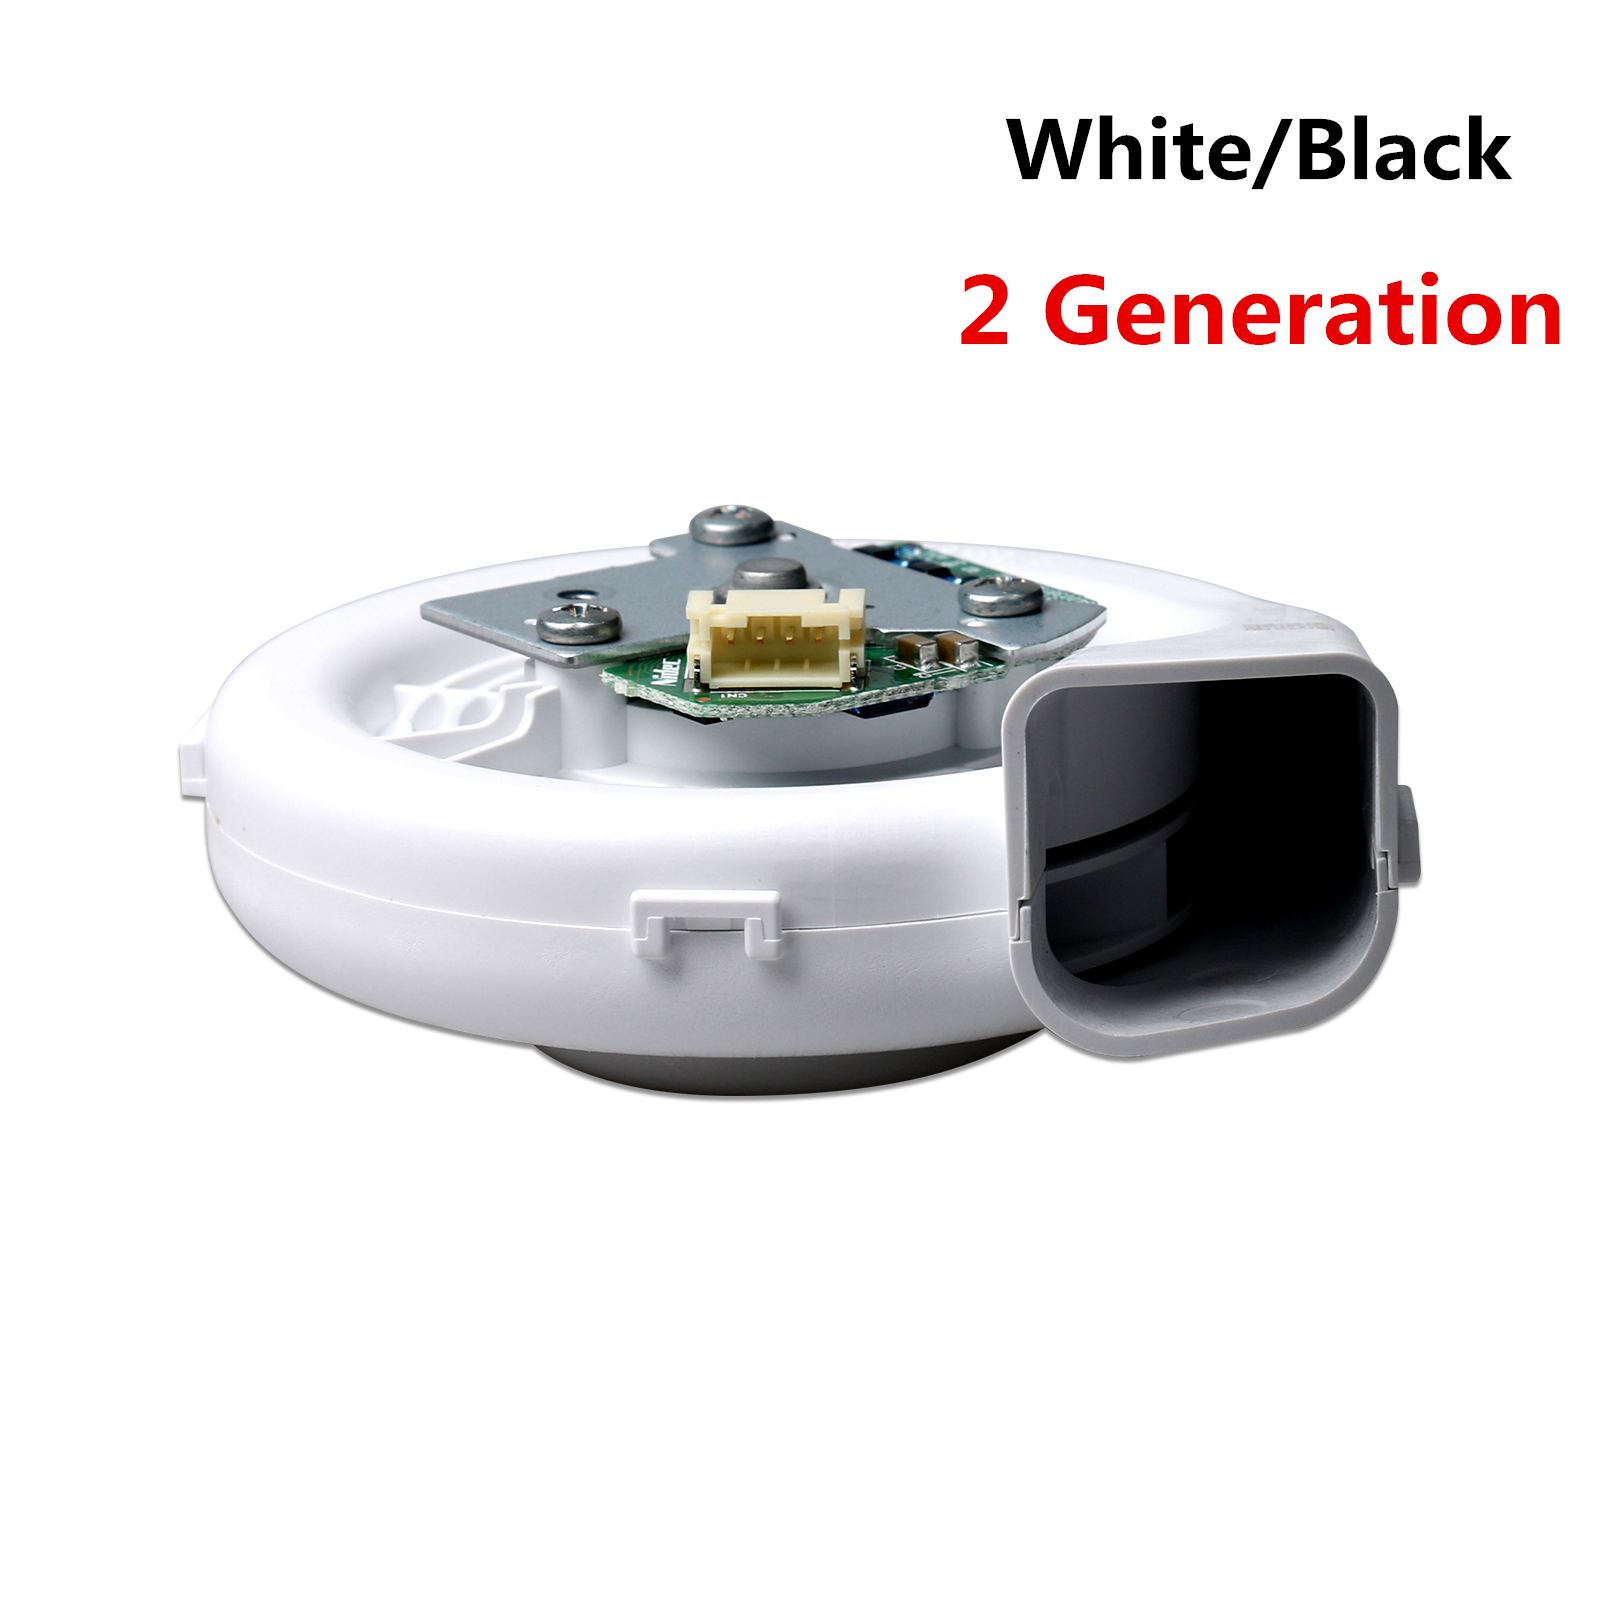 Original Engine ventilator fan motor for Xiaomi 2nd Gen Roborock S50 S51 S55 Robot Vacuum Cleaner Parts Sweeper Accessories